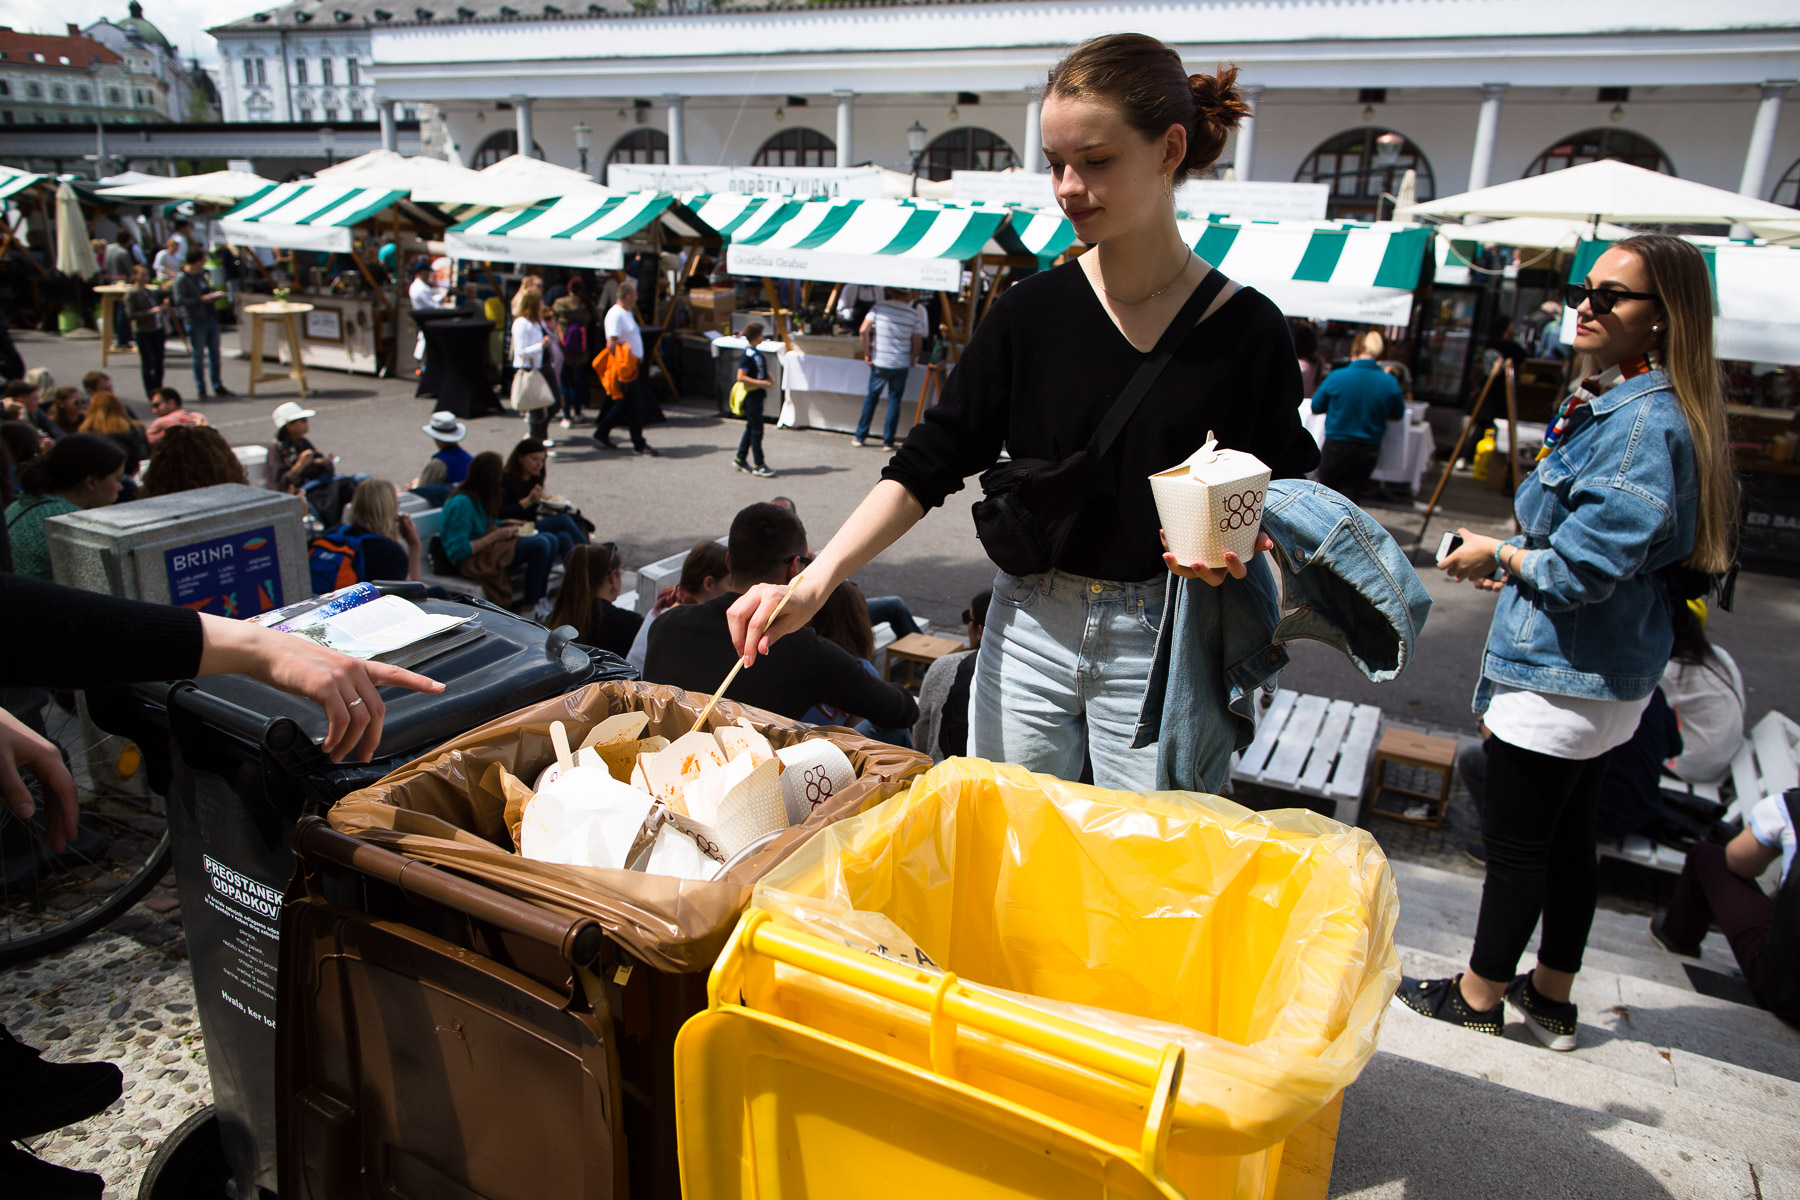 Voka Snaga, Ljubljana's waste management company, provides separate bins for packaging, biological and residual waste and staff at major public events like Open Kitchen (pictured here), a popular food market with over 50 vendors and up to 10,000 visitors daily. They separately collect about 95% of waste generated at the event.